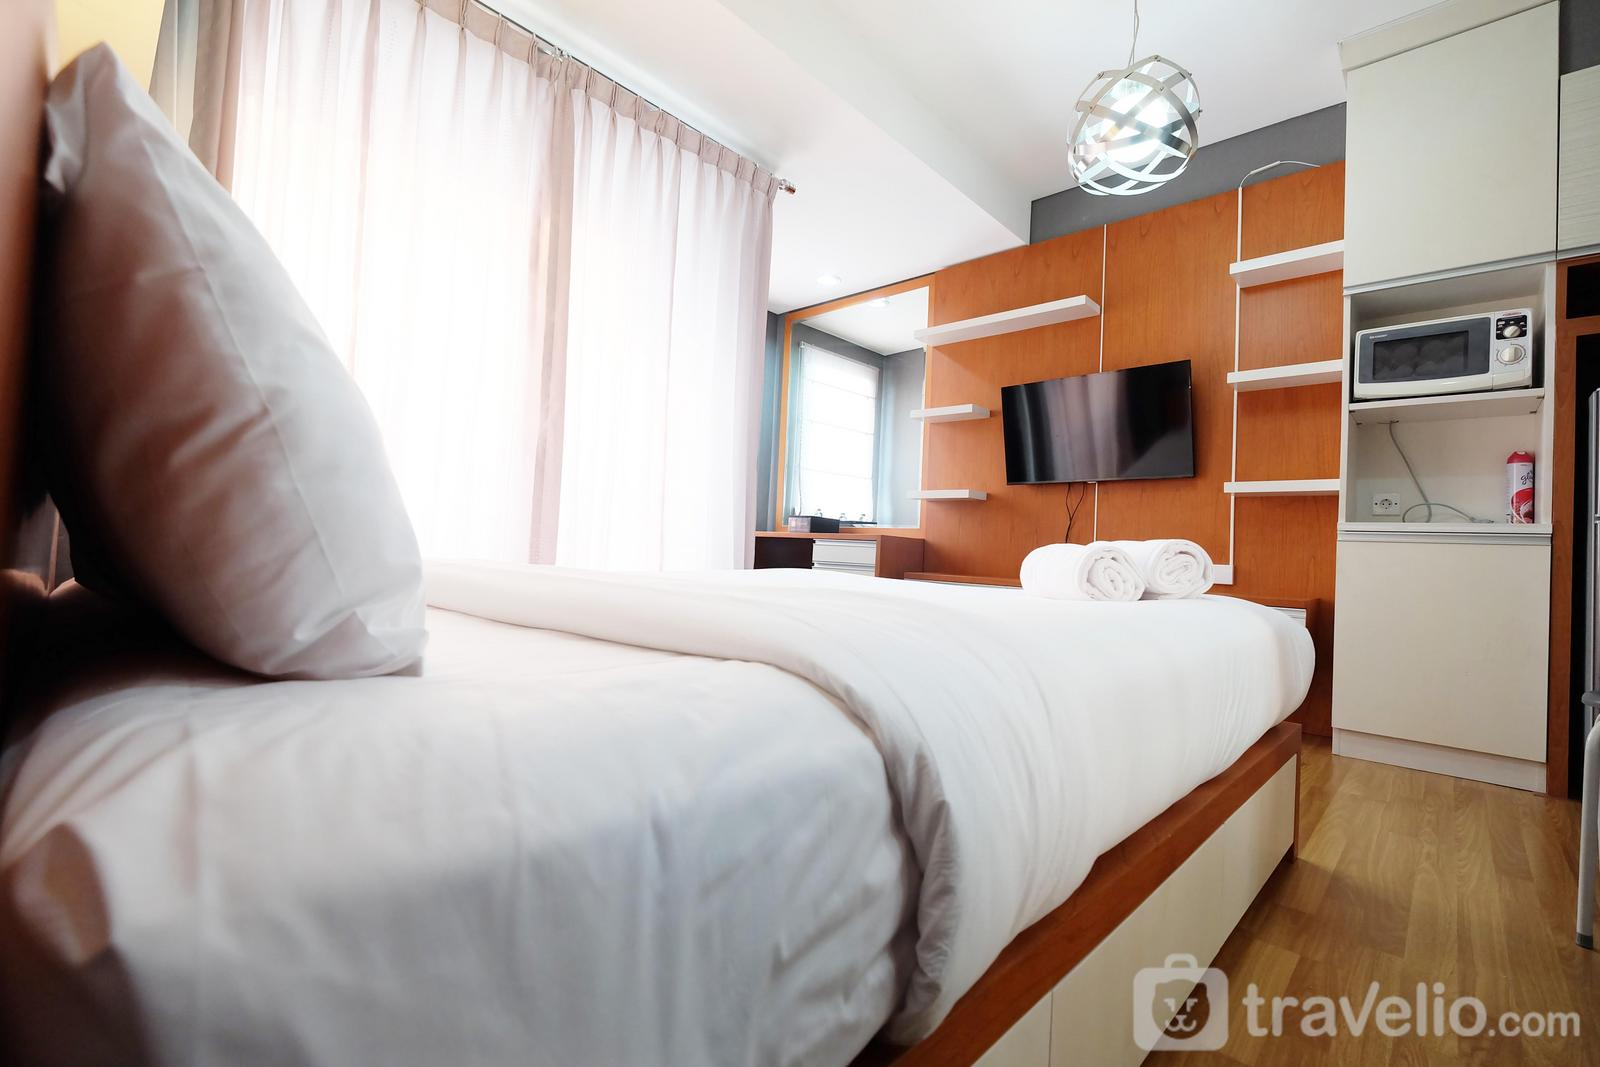 Thamrin Executive - Tidy Studio Apartment @ Thamrin Executive Residence near Mall Grand Indonesia By Travelio